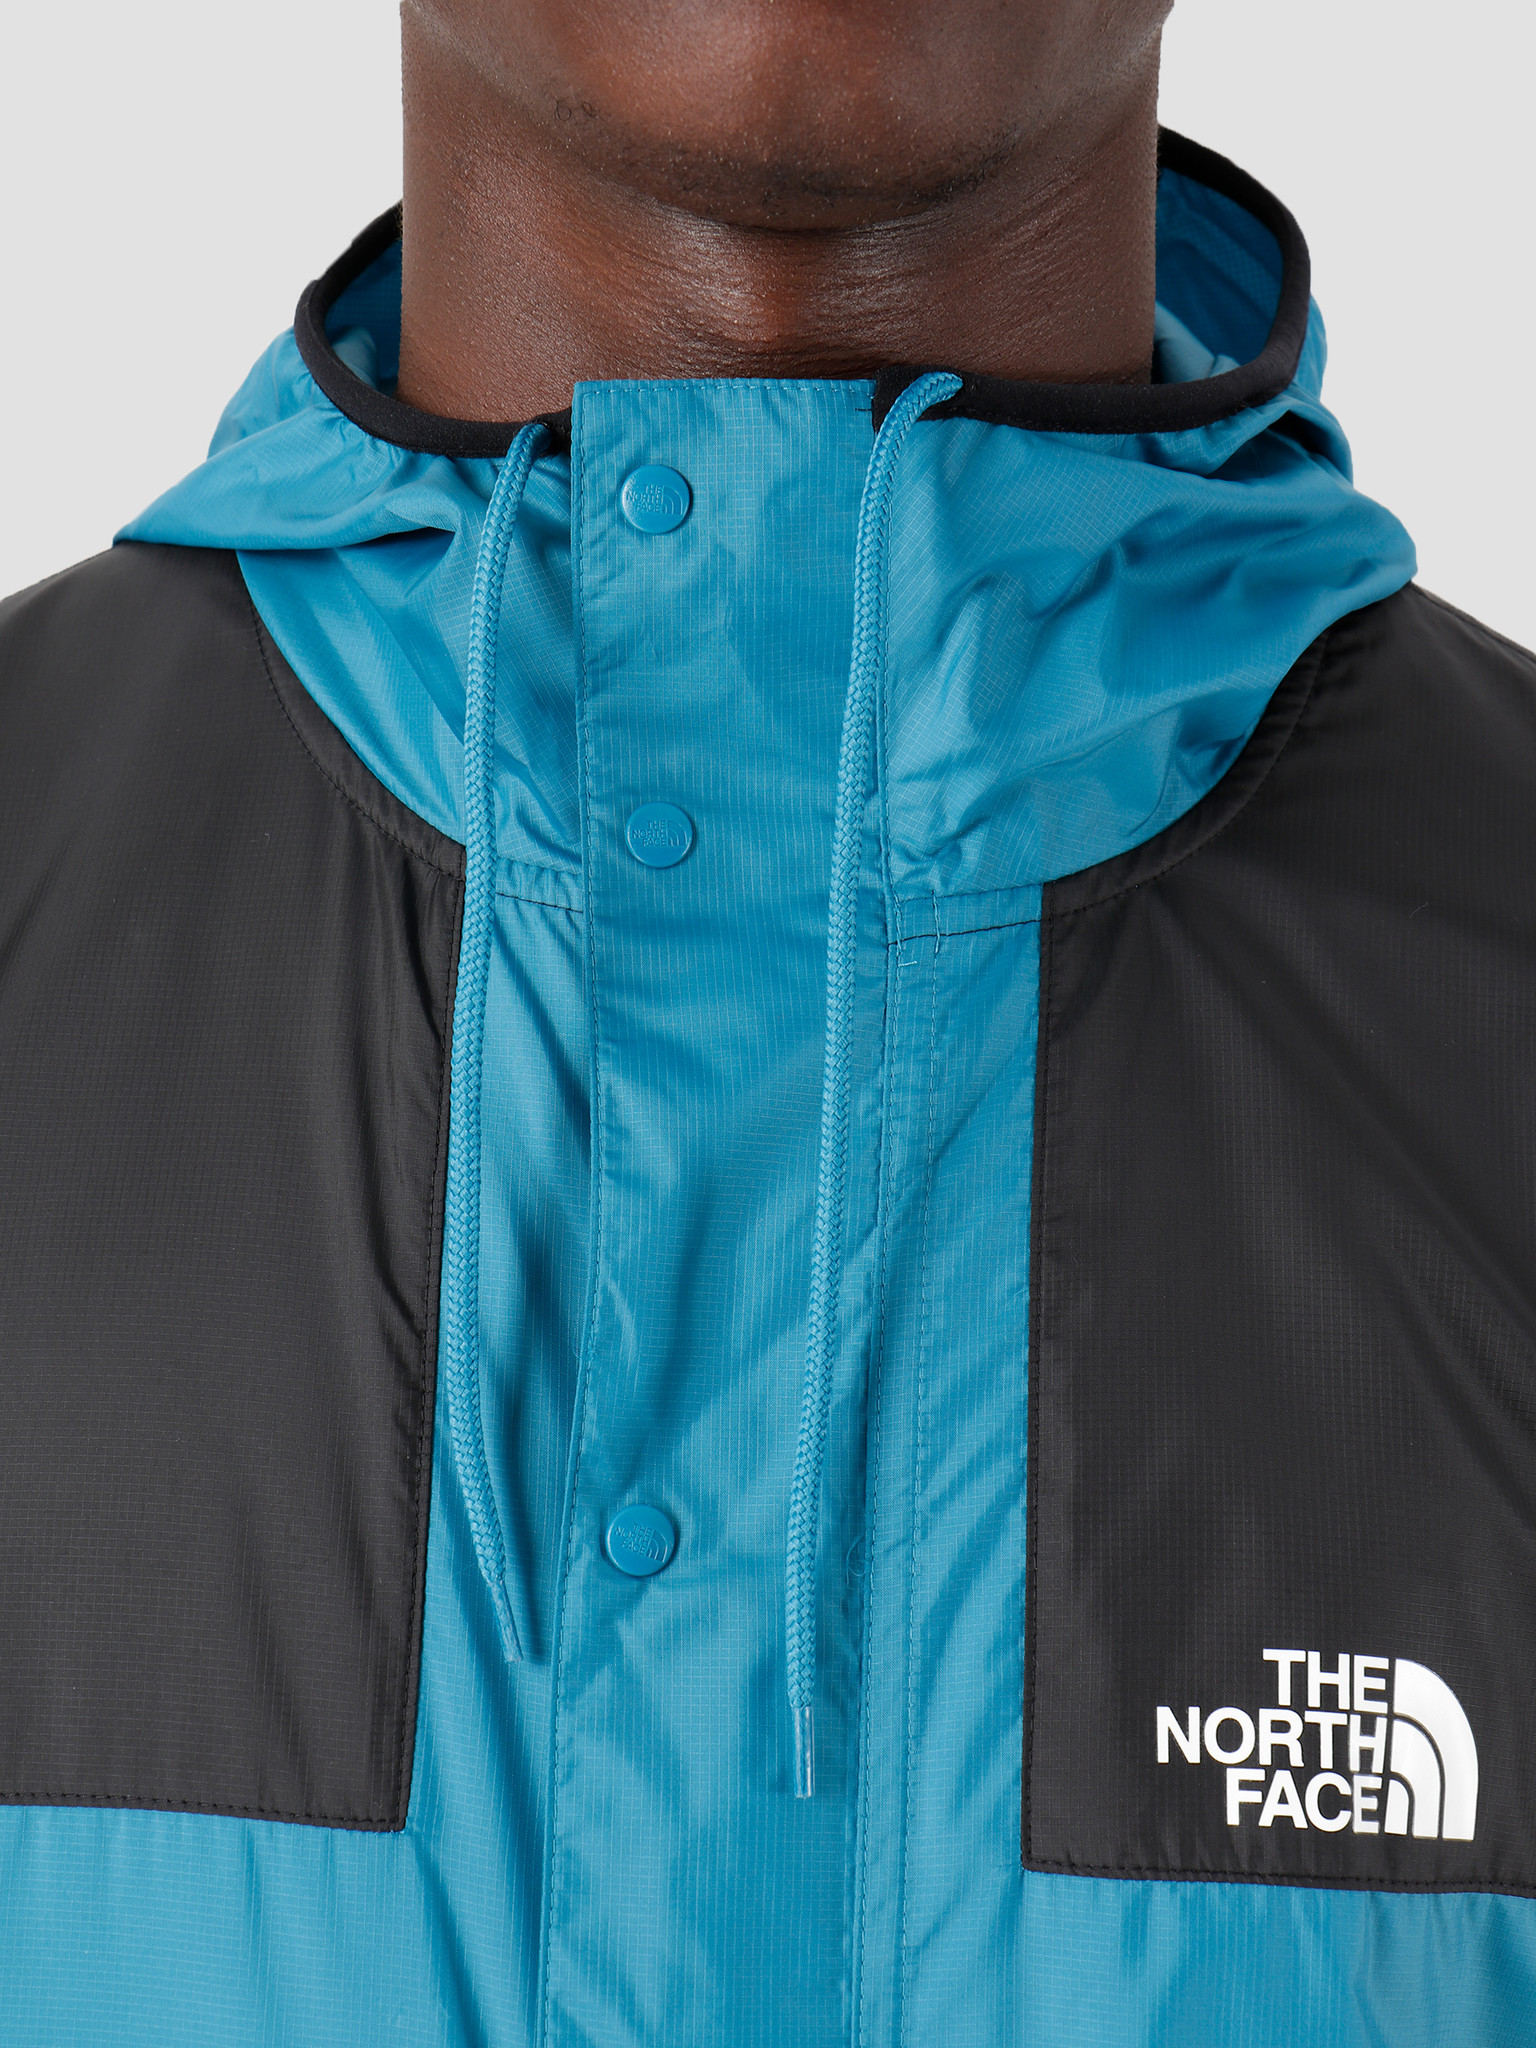 The North Face The North Face 1985 Seasonal Mountain Jacket Saxony Blue Black T0CH37NT1